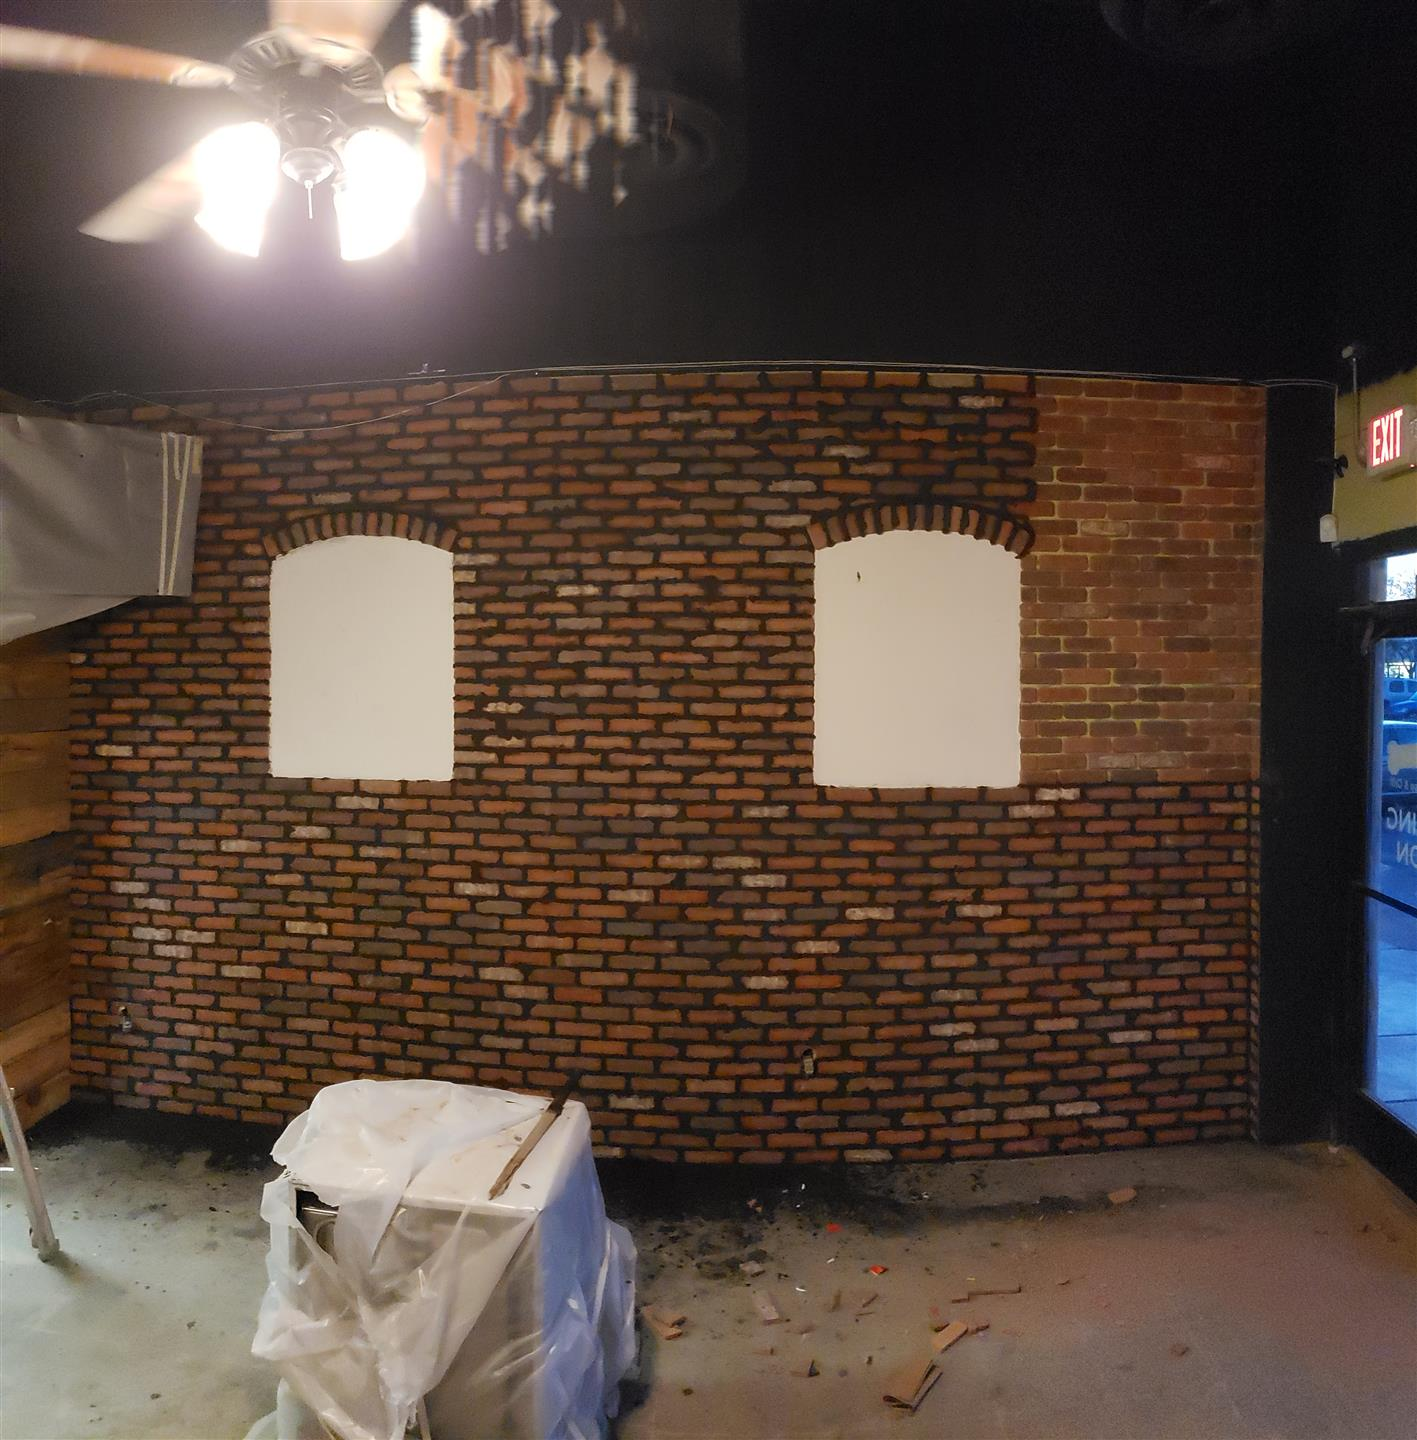 interior view of renovations on brick wall